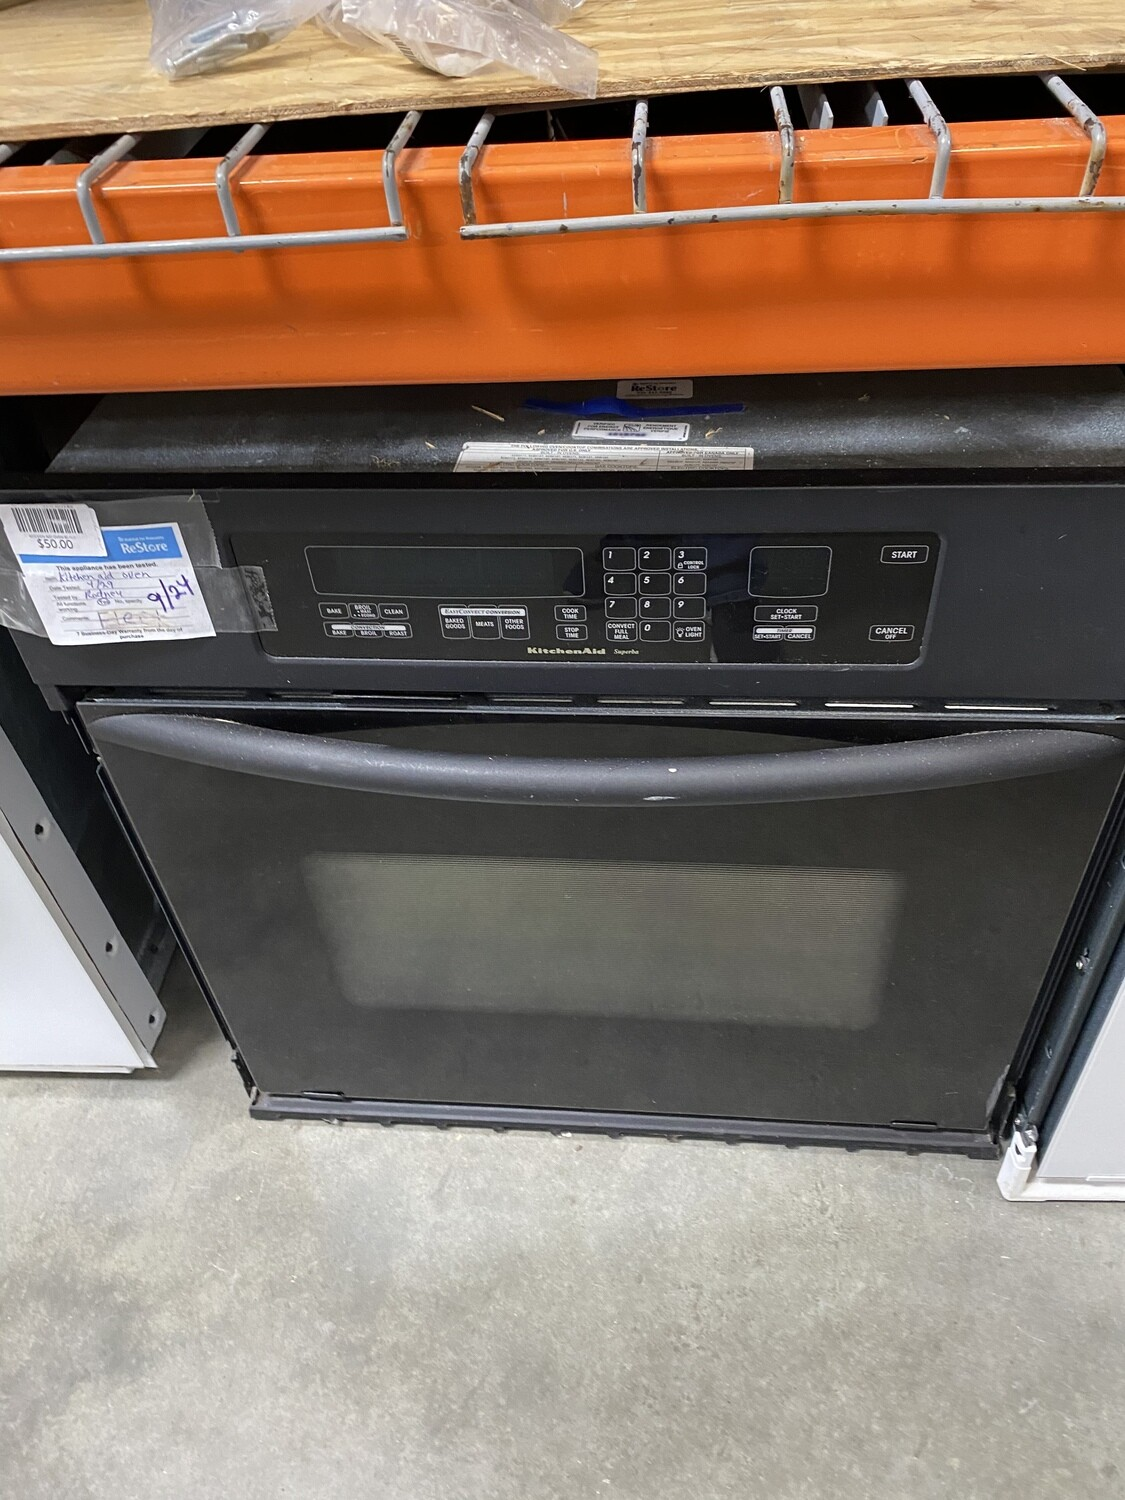 KITCHEN AID WALL OVEN BLACK